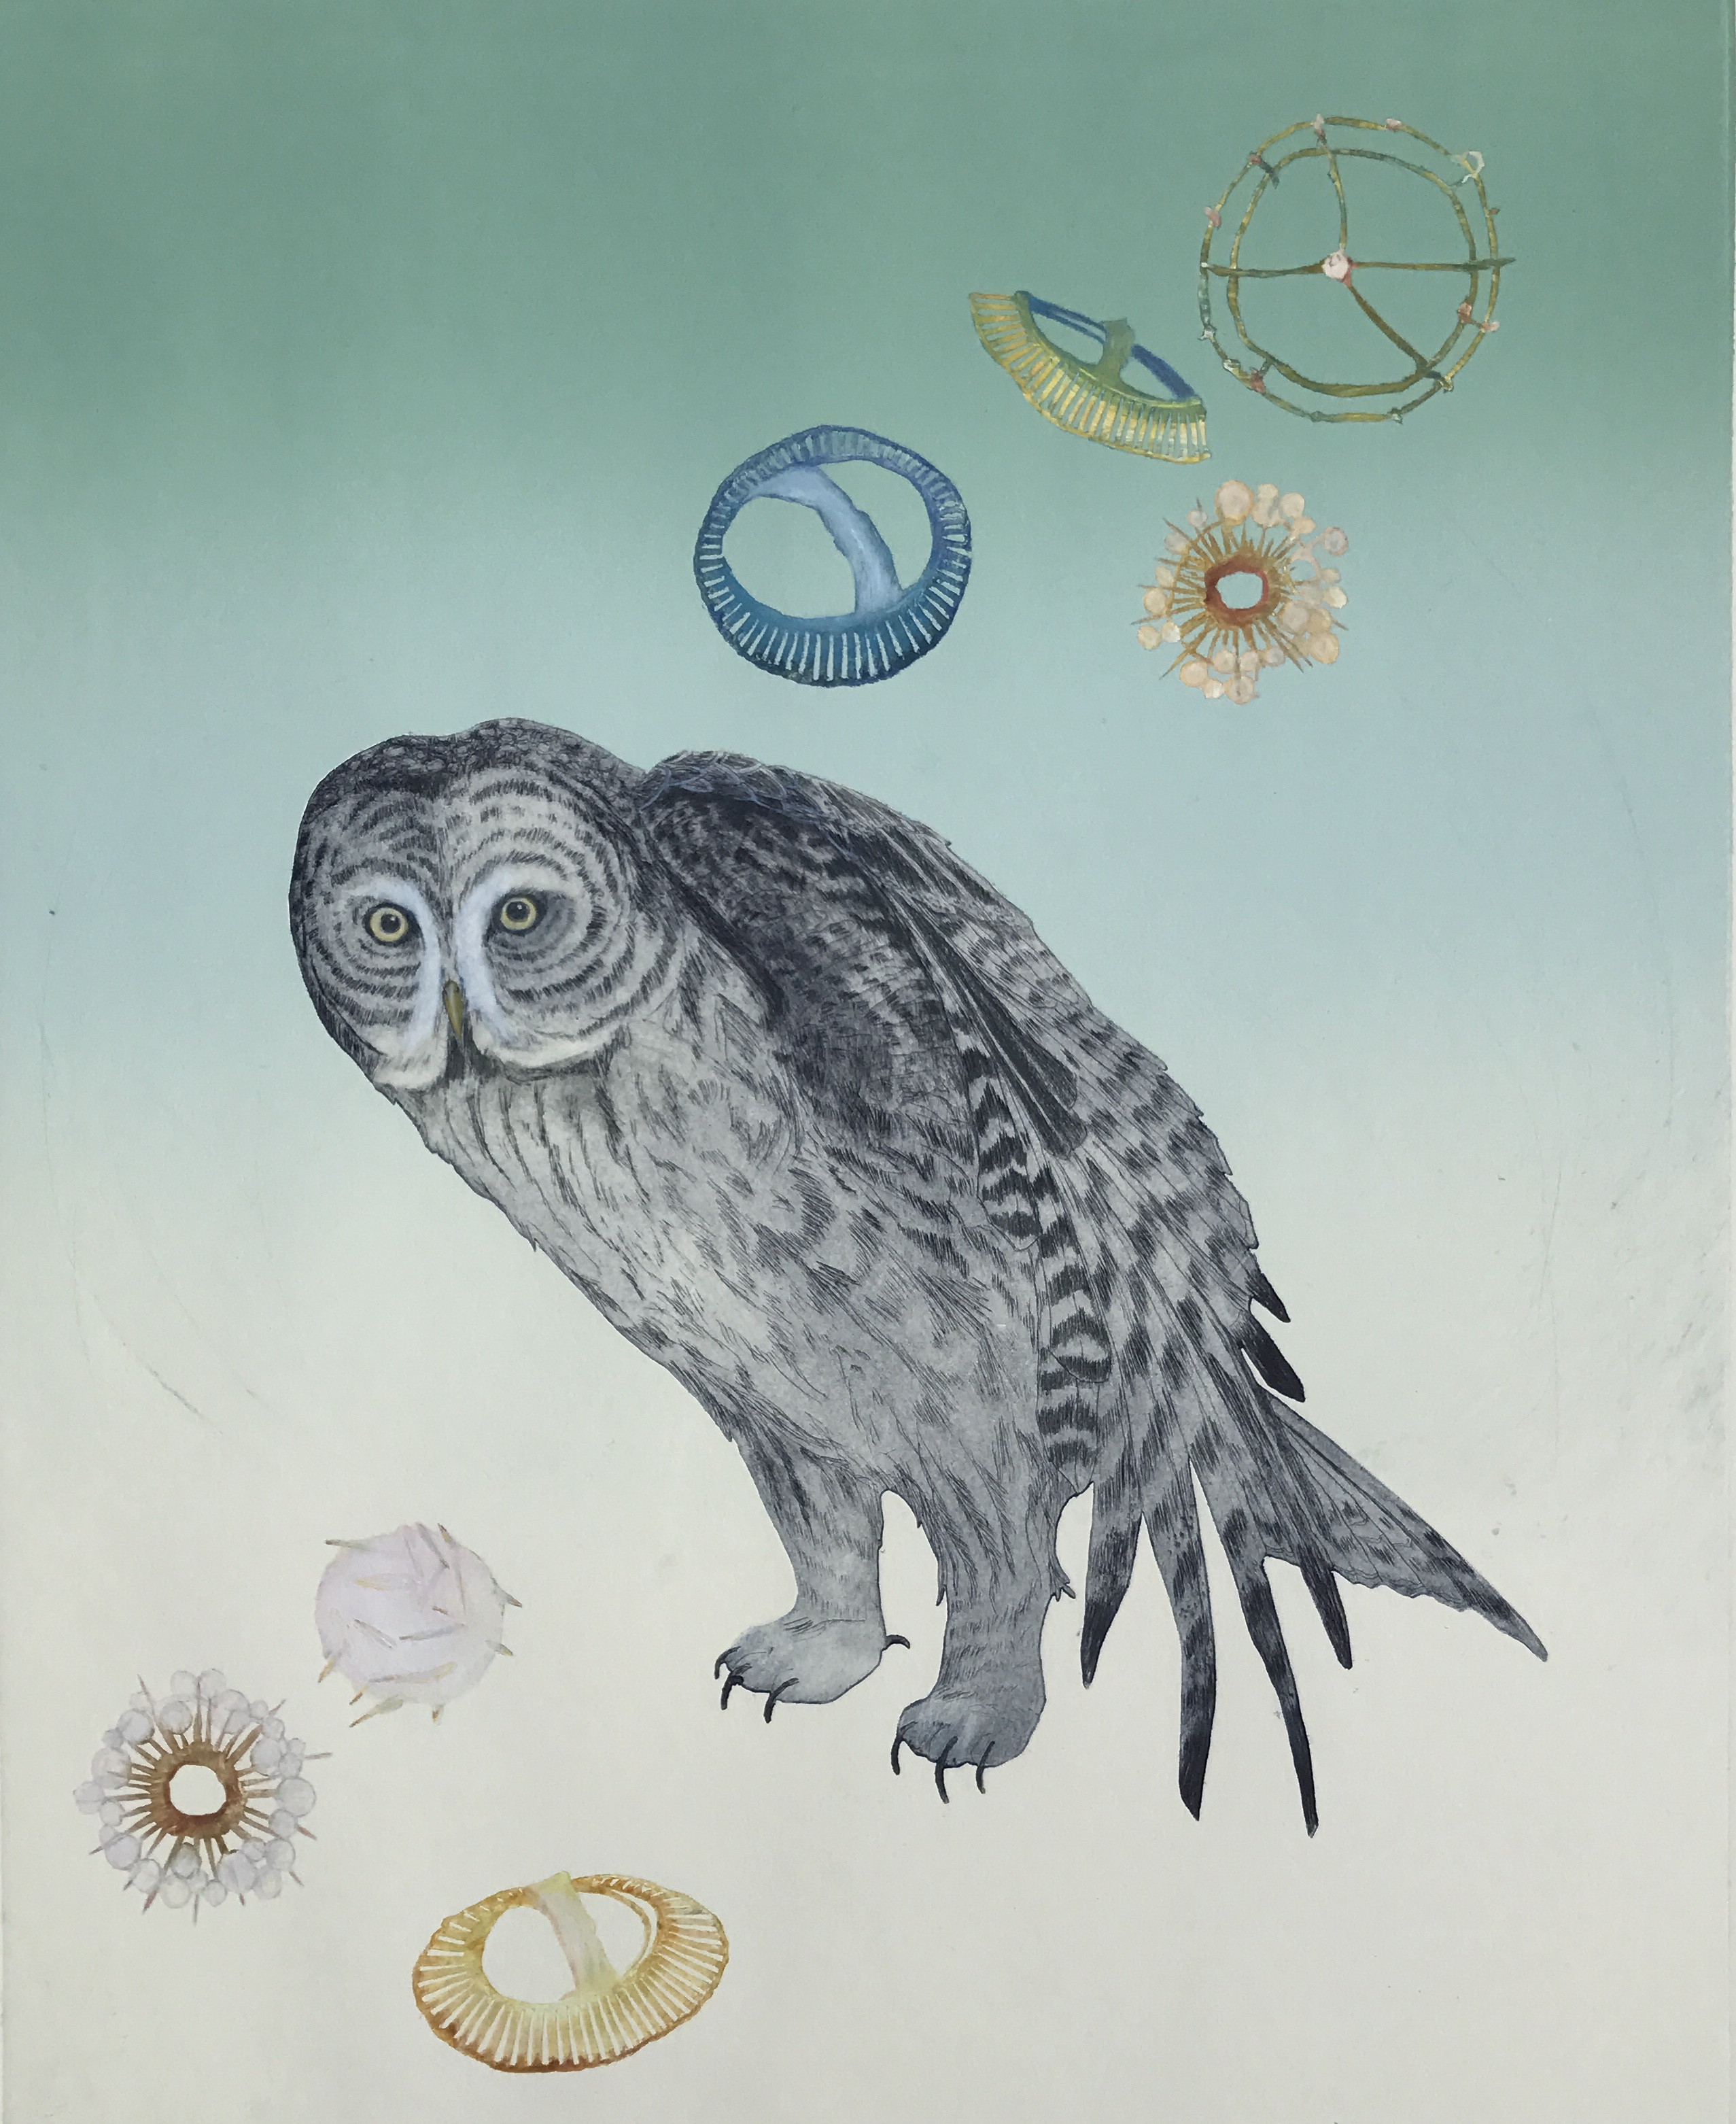 Obstacles Exposed (Gray Owl)